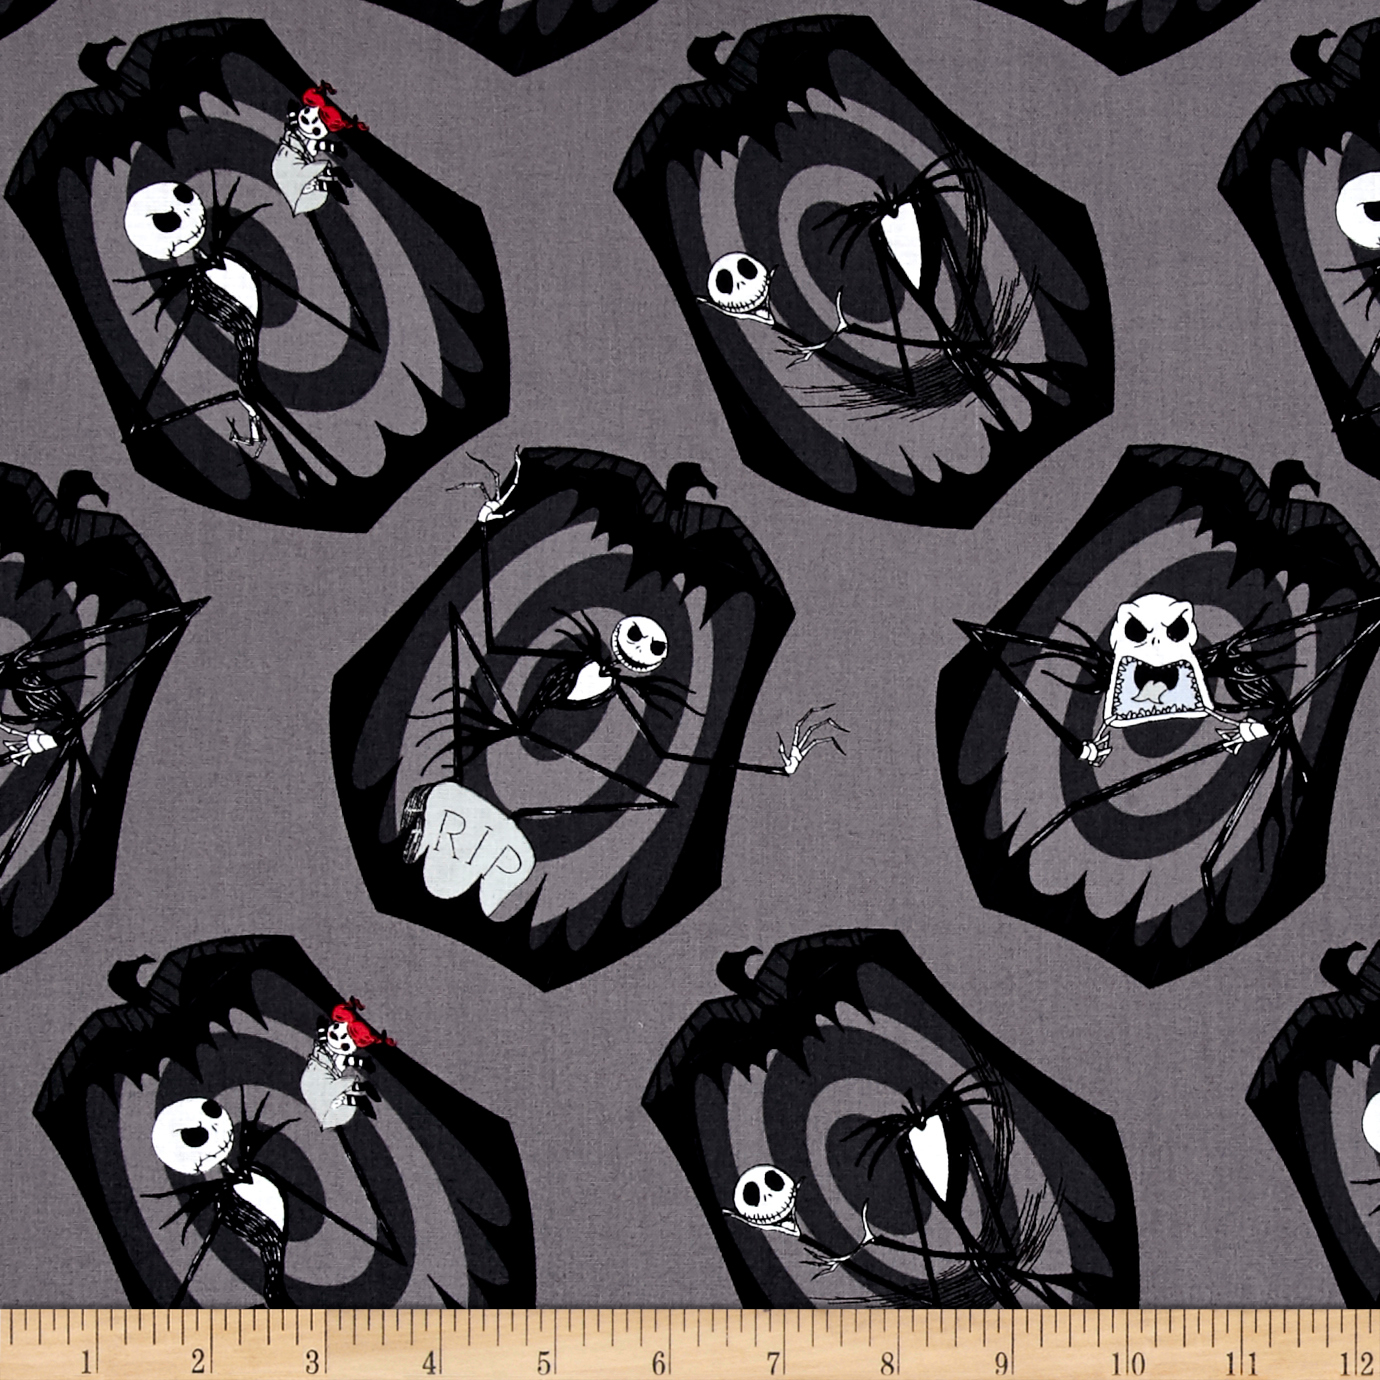 The Nightmare Before Christmas The Pumpkin King Iron Fabric by Eugene in USA